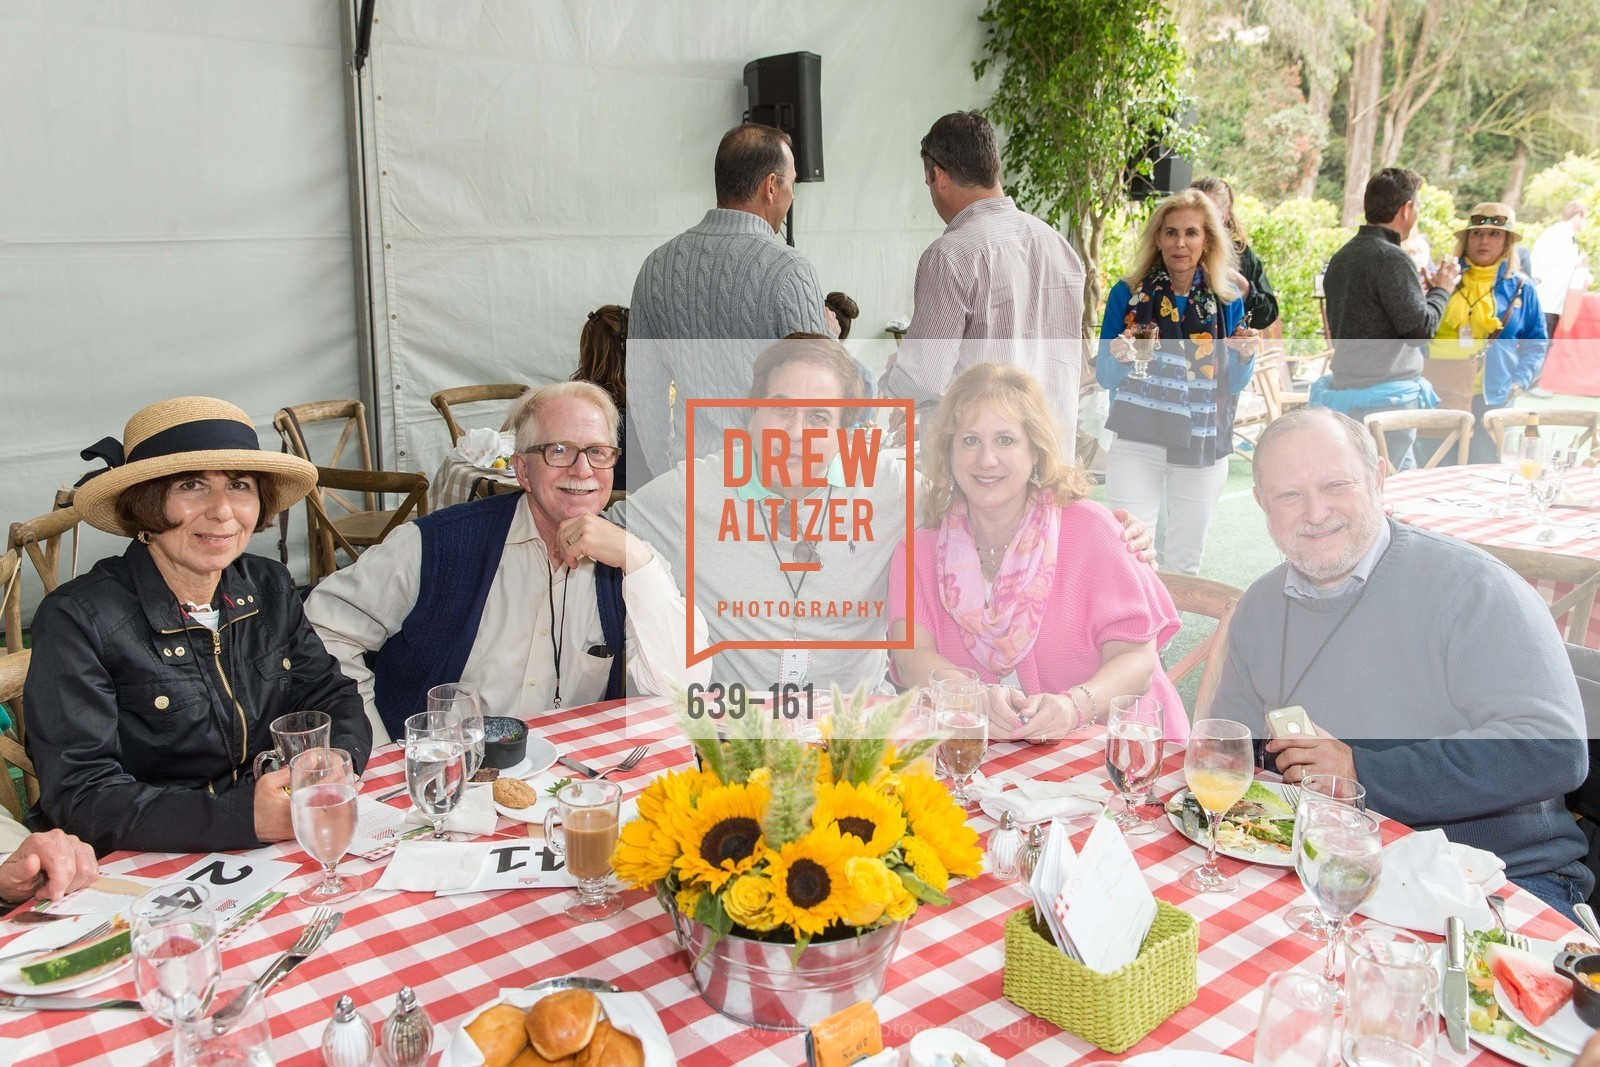 Jan Newman, Bob Newman, Jerry Mendelsohn, Michele Mendelsohn, Jon Benjamin, THE BIG PICNIC Kicking off  2015 Stern Grove Season, Stern Grove. 2750 19th Avenue, June 14th, 2015,Drew Altizer, Drew Altizer Photography, full-service agency, private events, San Francisco photographer, photographer california